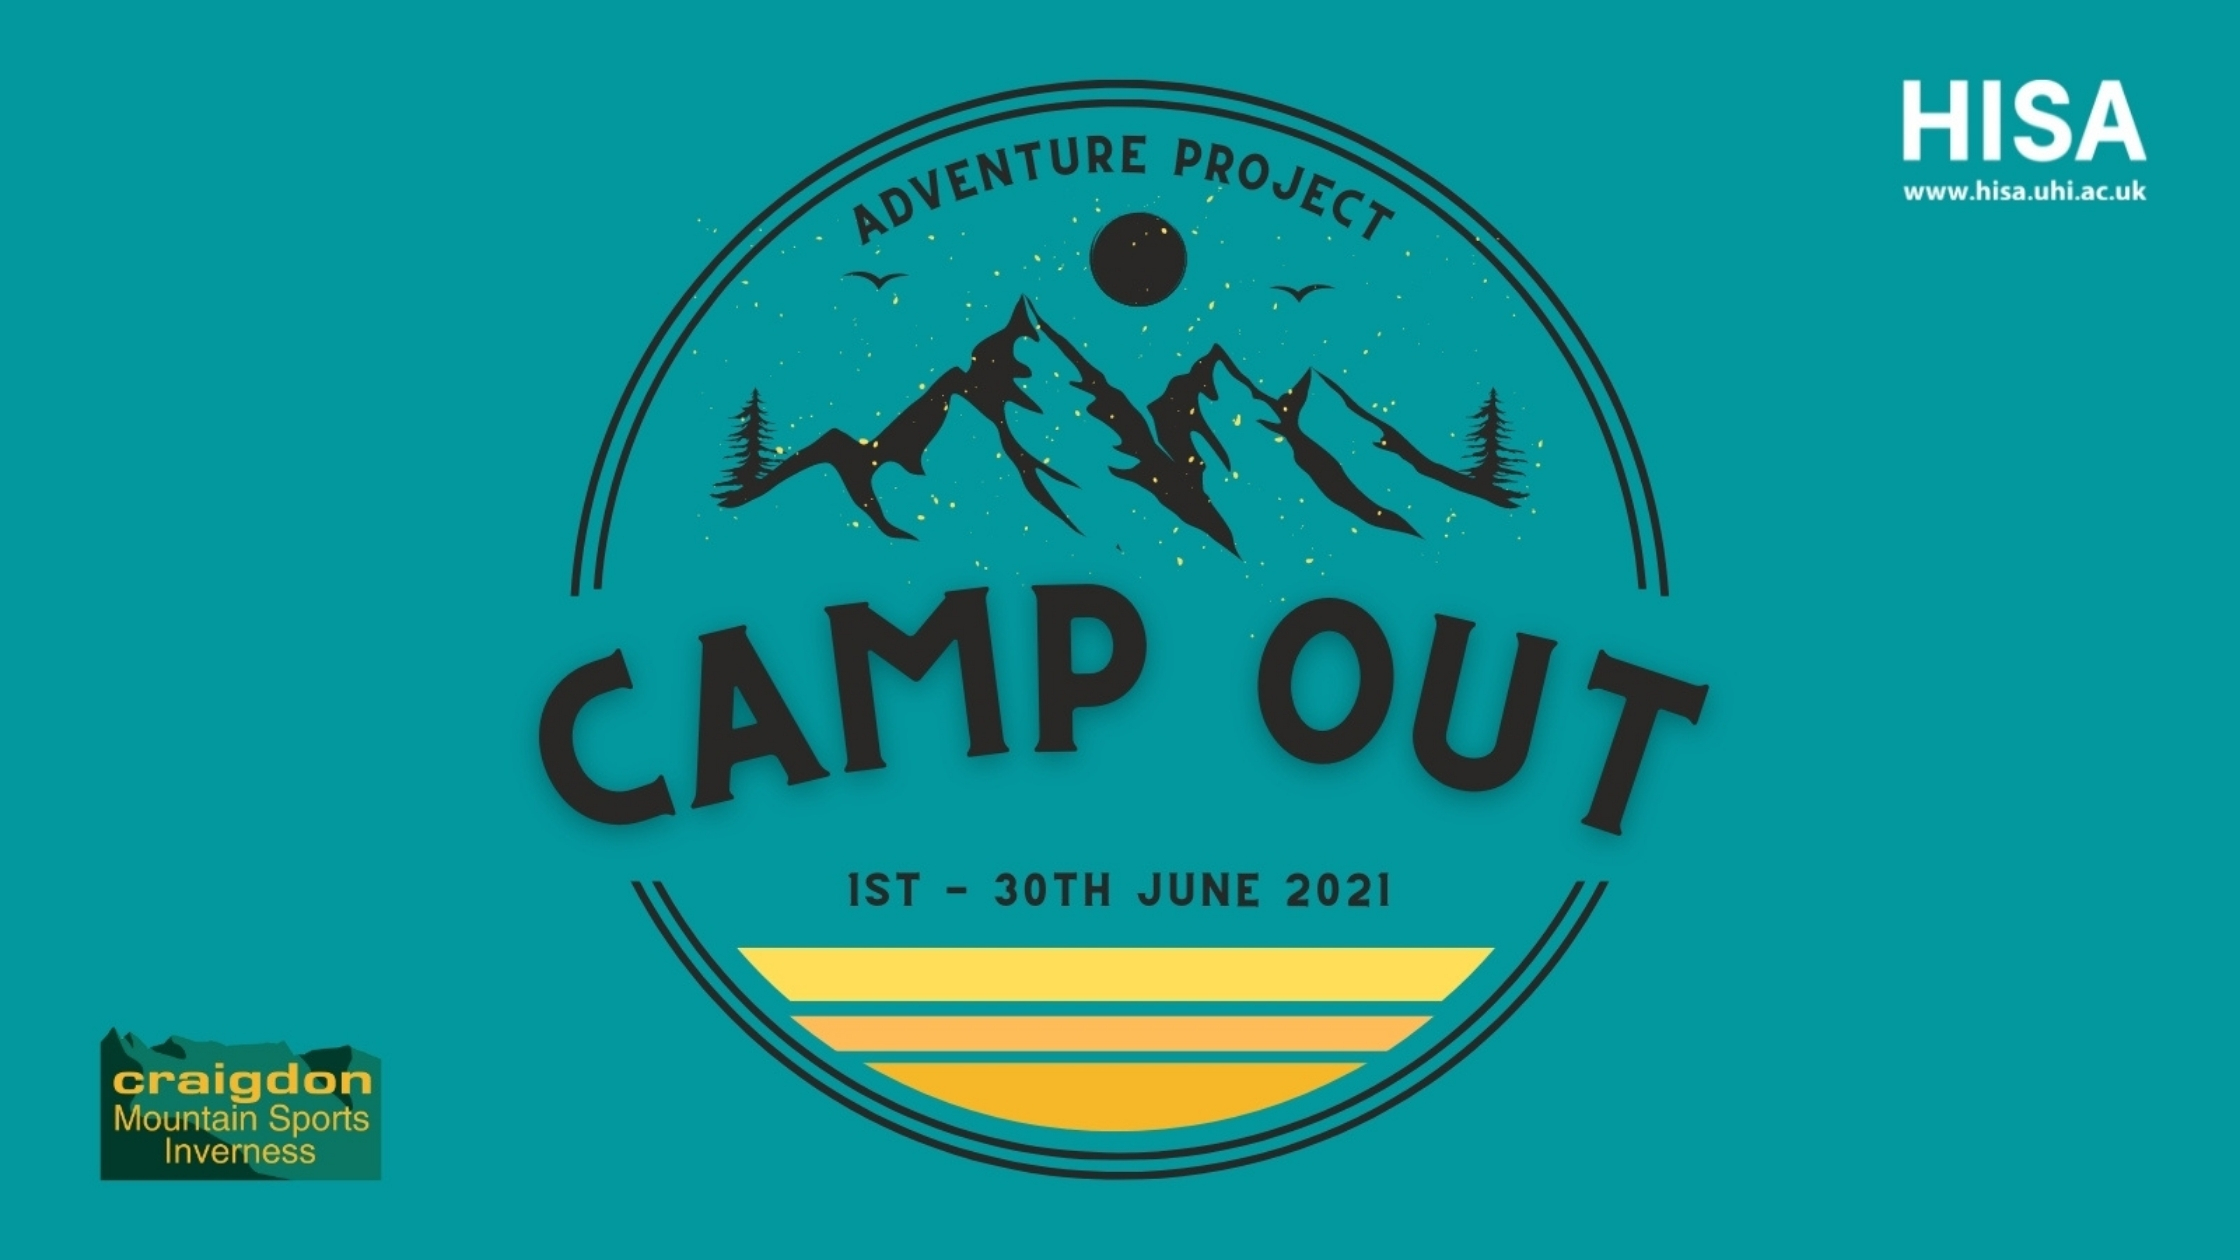 Camp out website banner